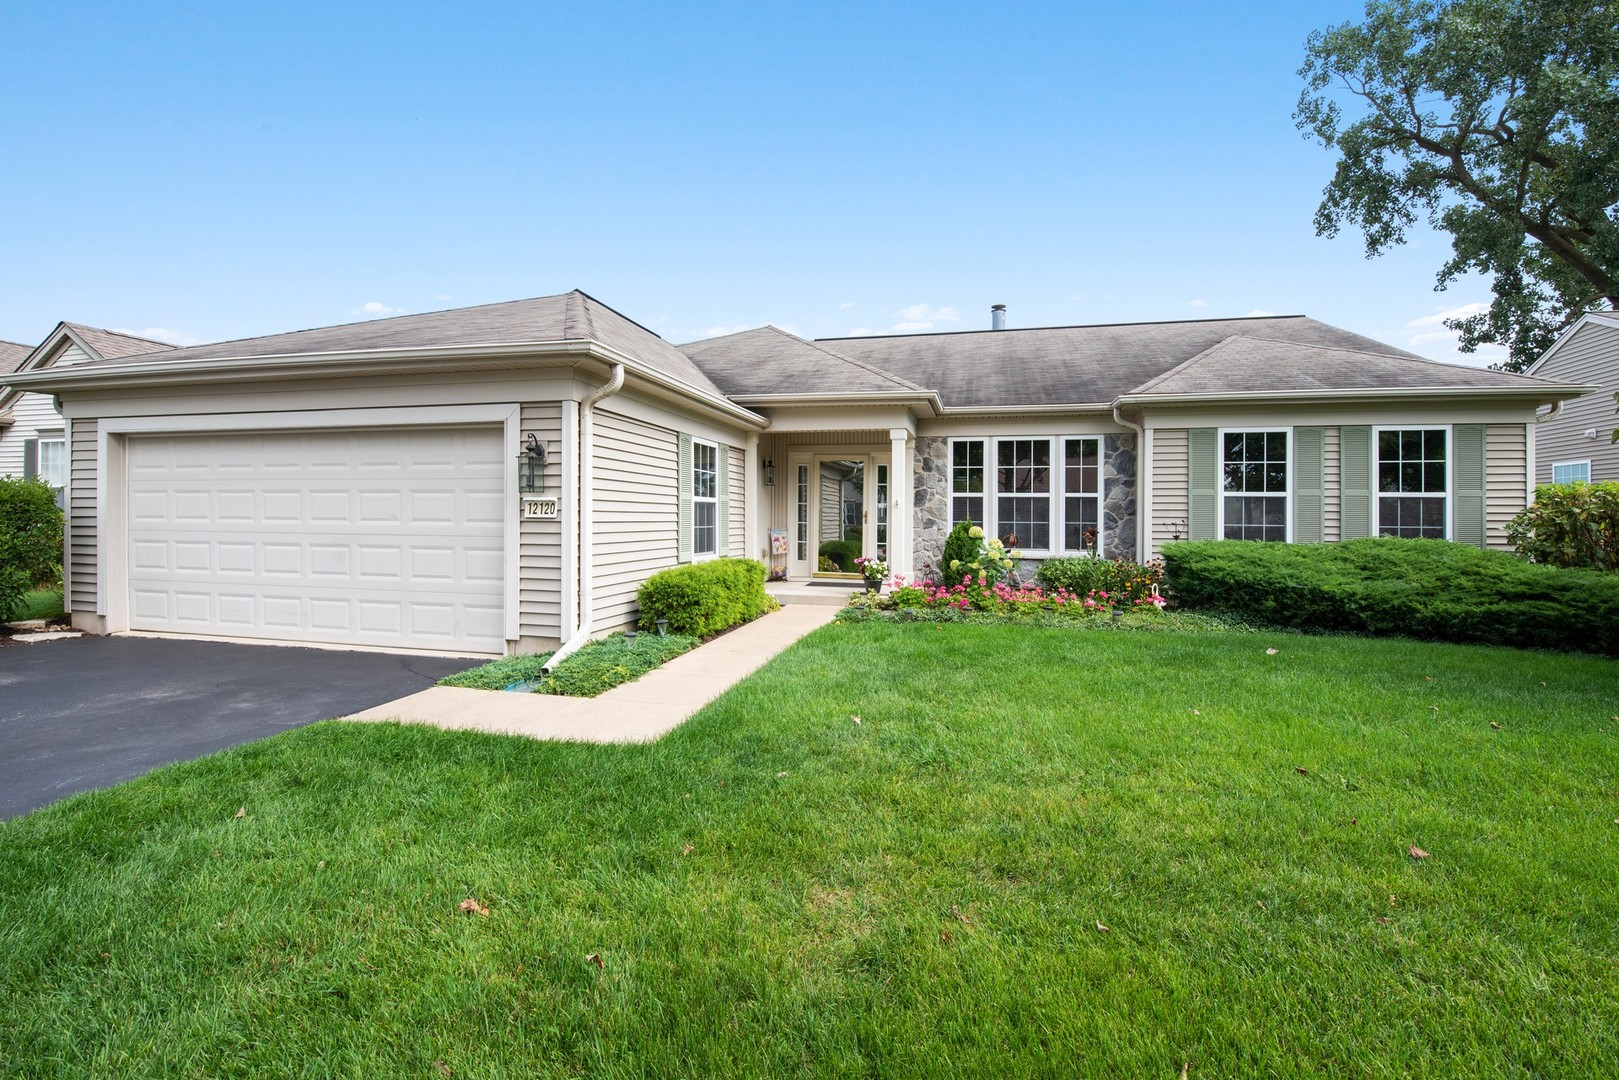 Photo for 12120 Summer Ridge Lane, Huntley, IL 60142 (MLS # 10519348)